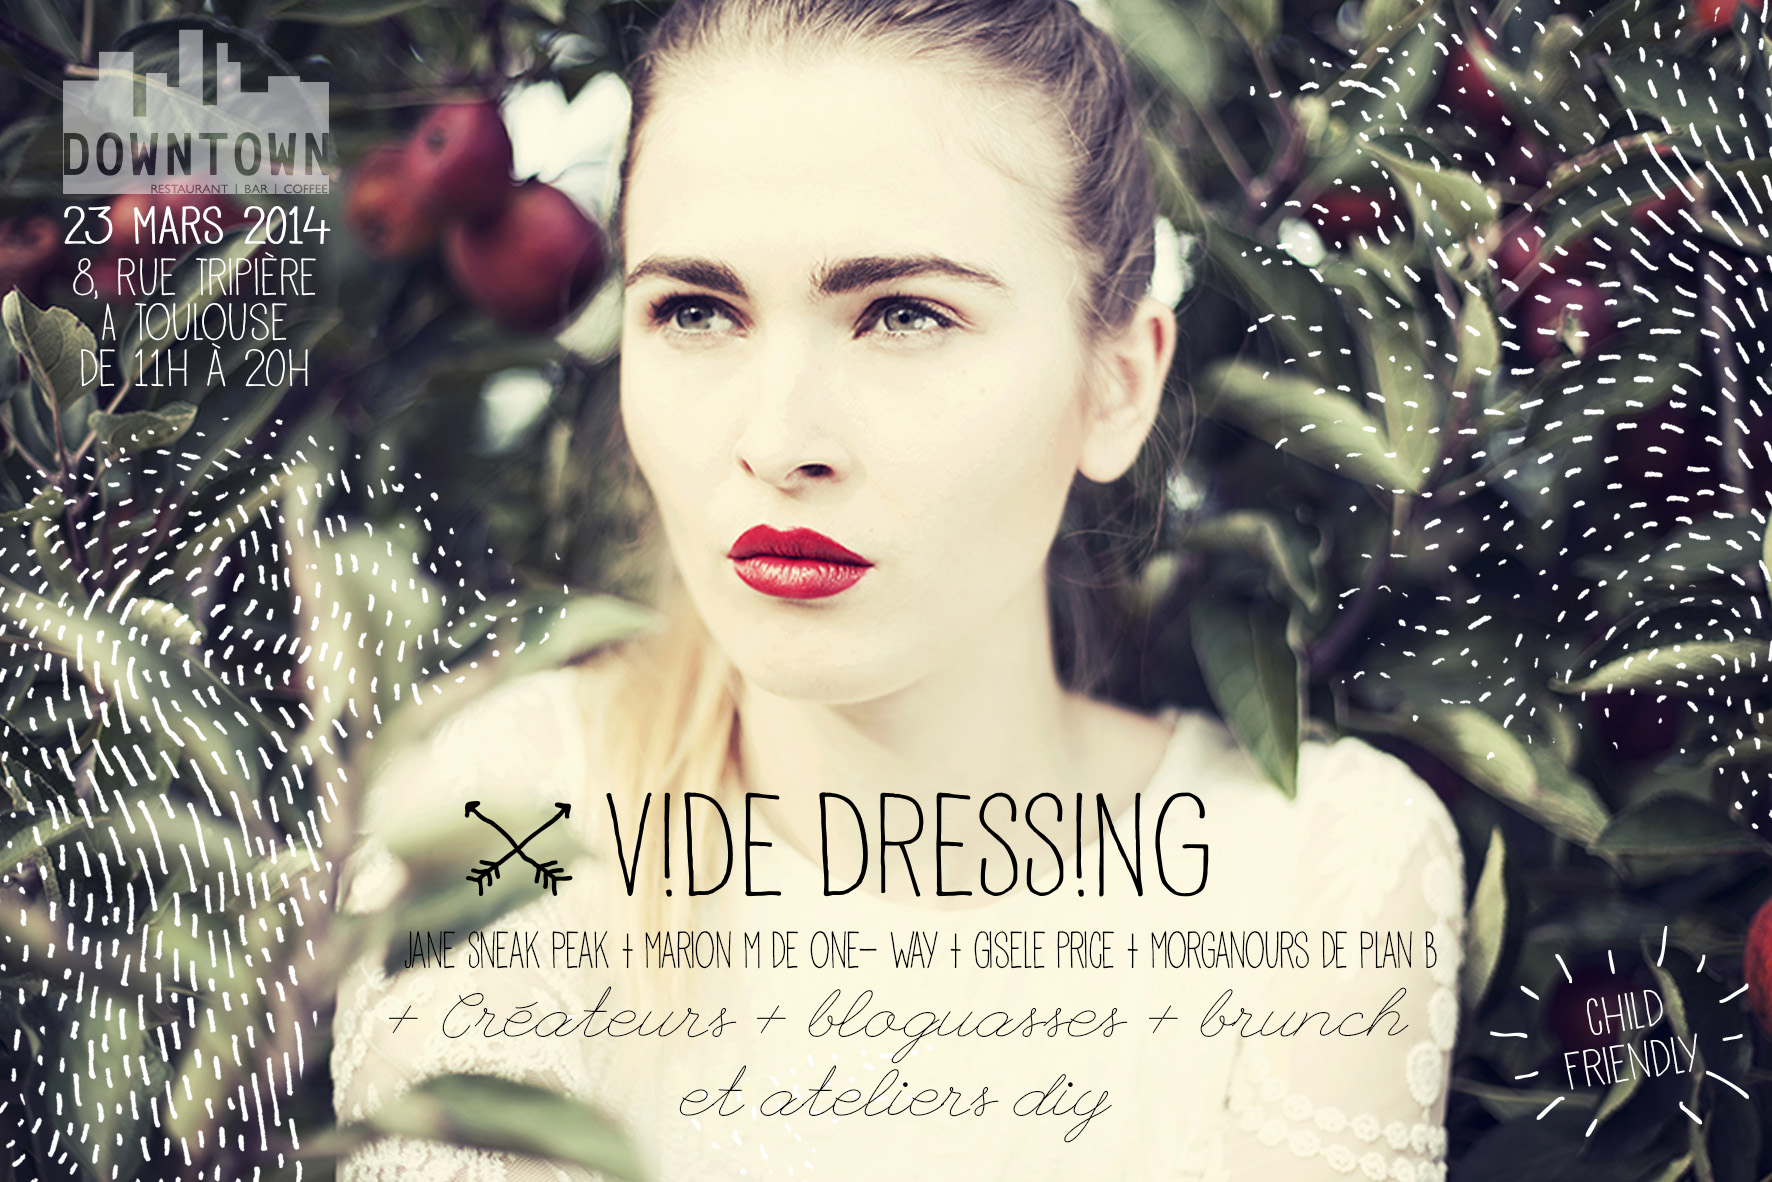 <b>vide dressing</b> toulouse - videdressing